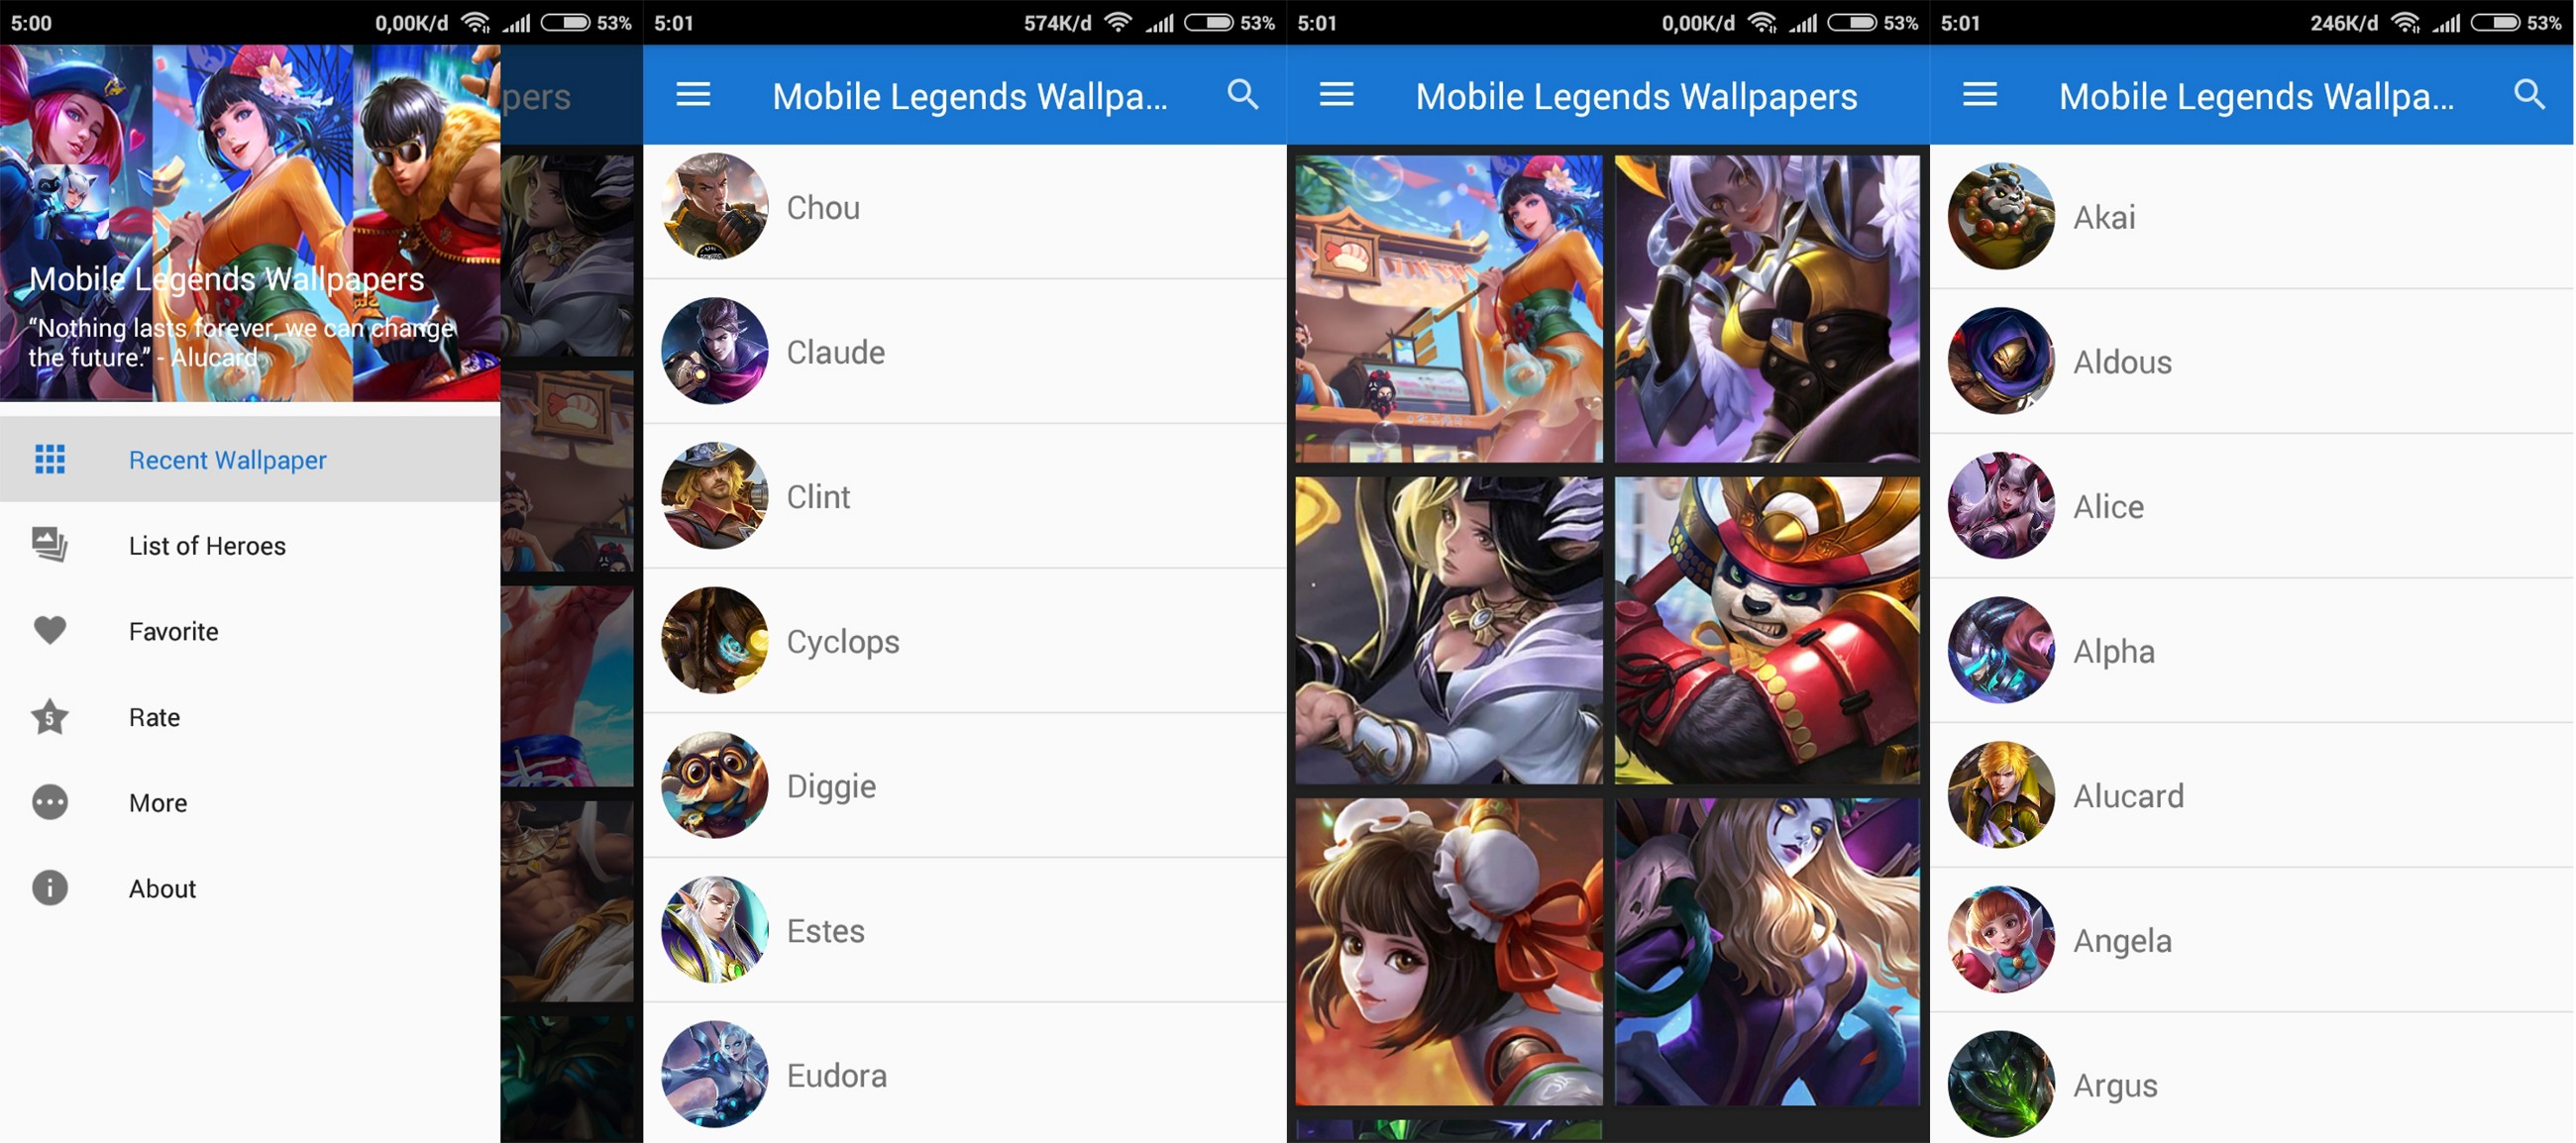 Best Mobile Legends Heroes Wallpapers You Must Have This